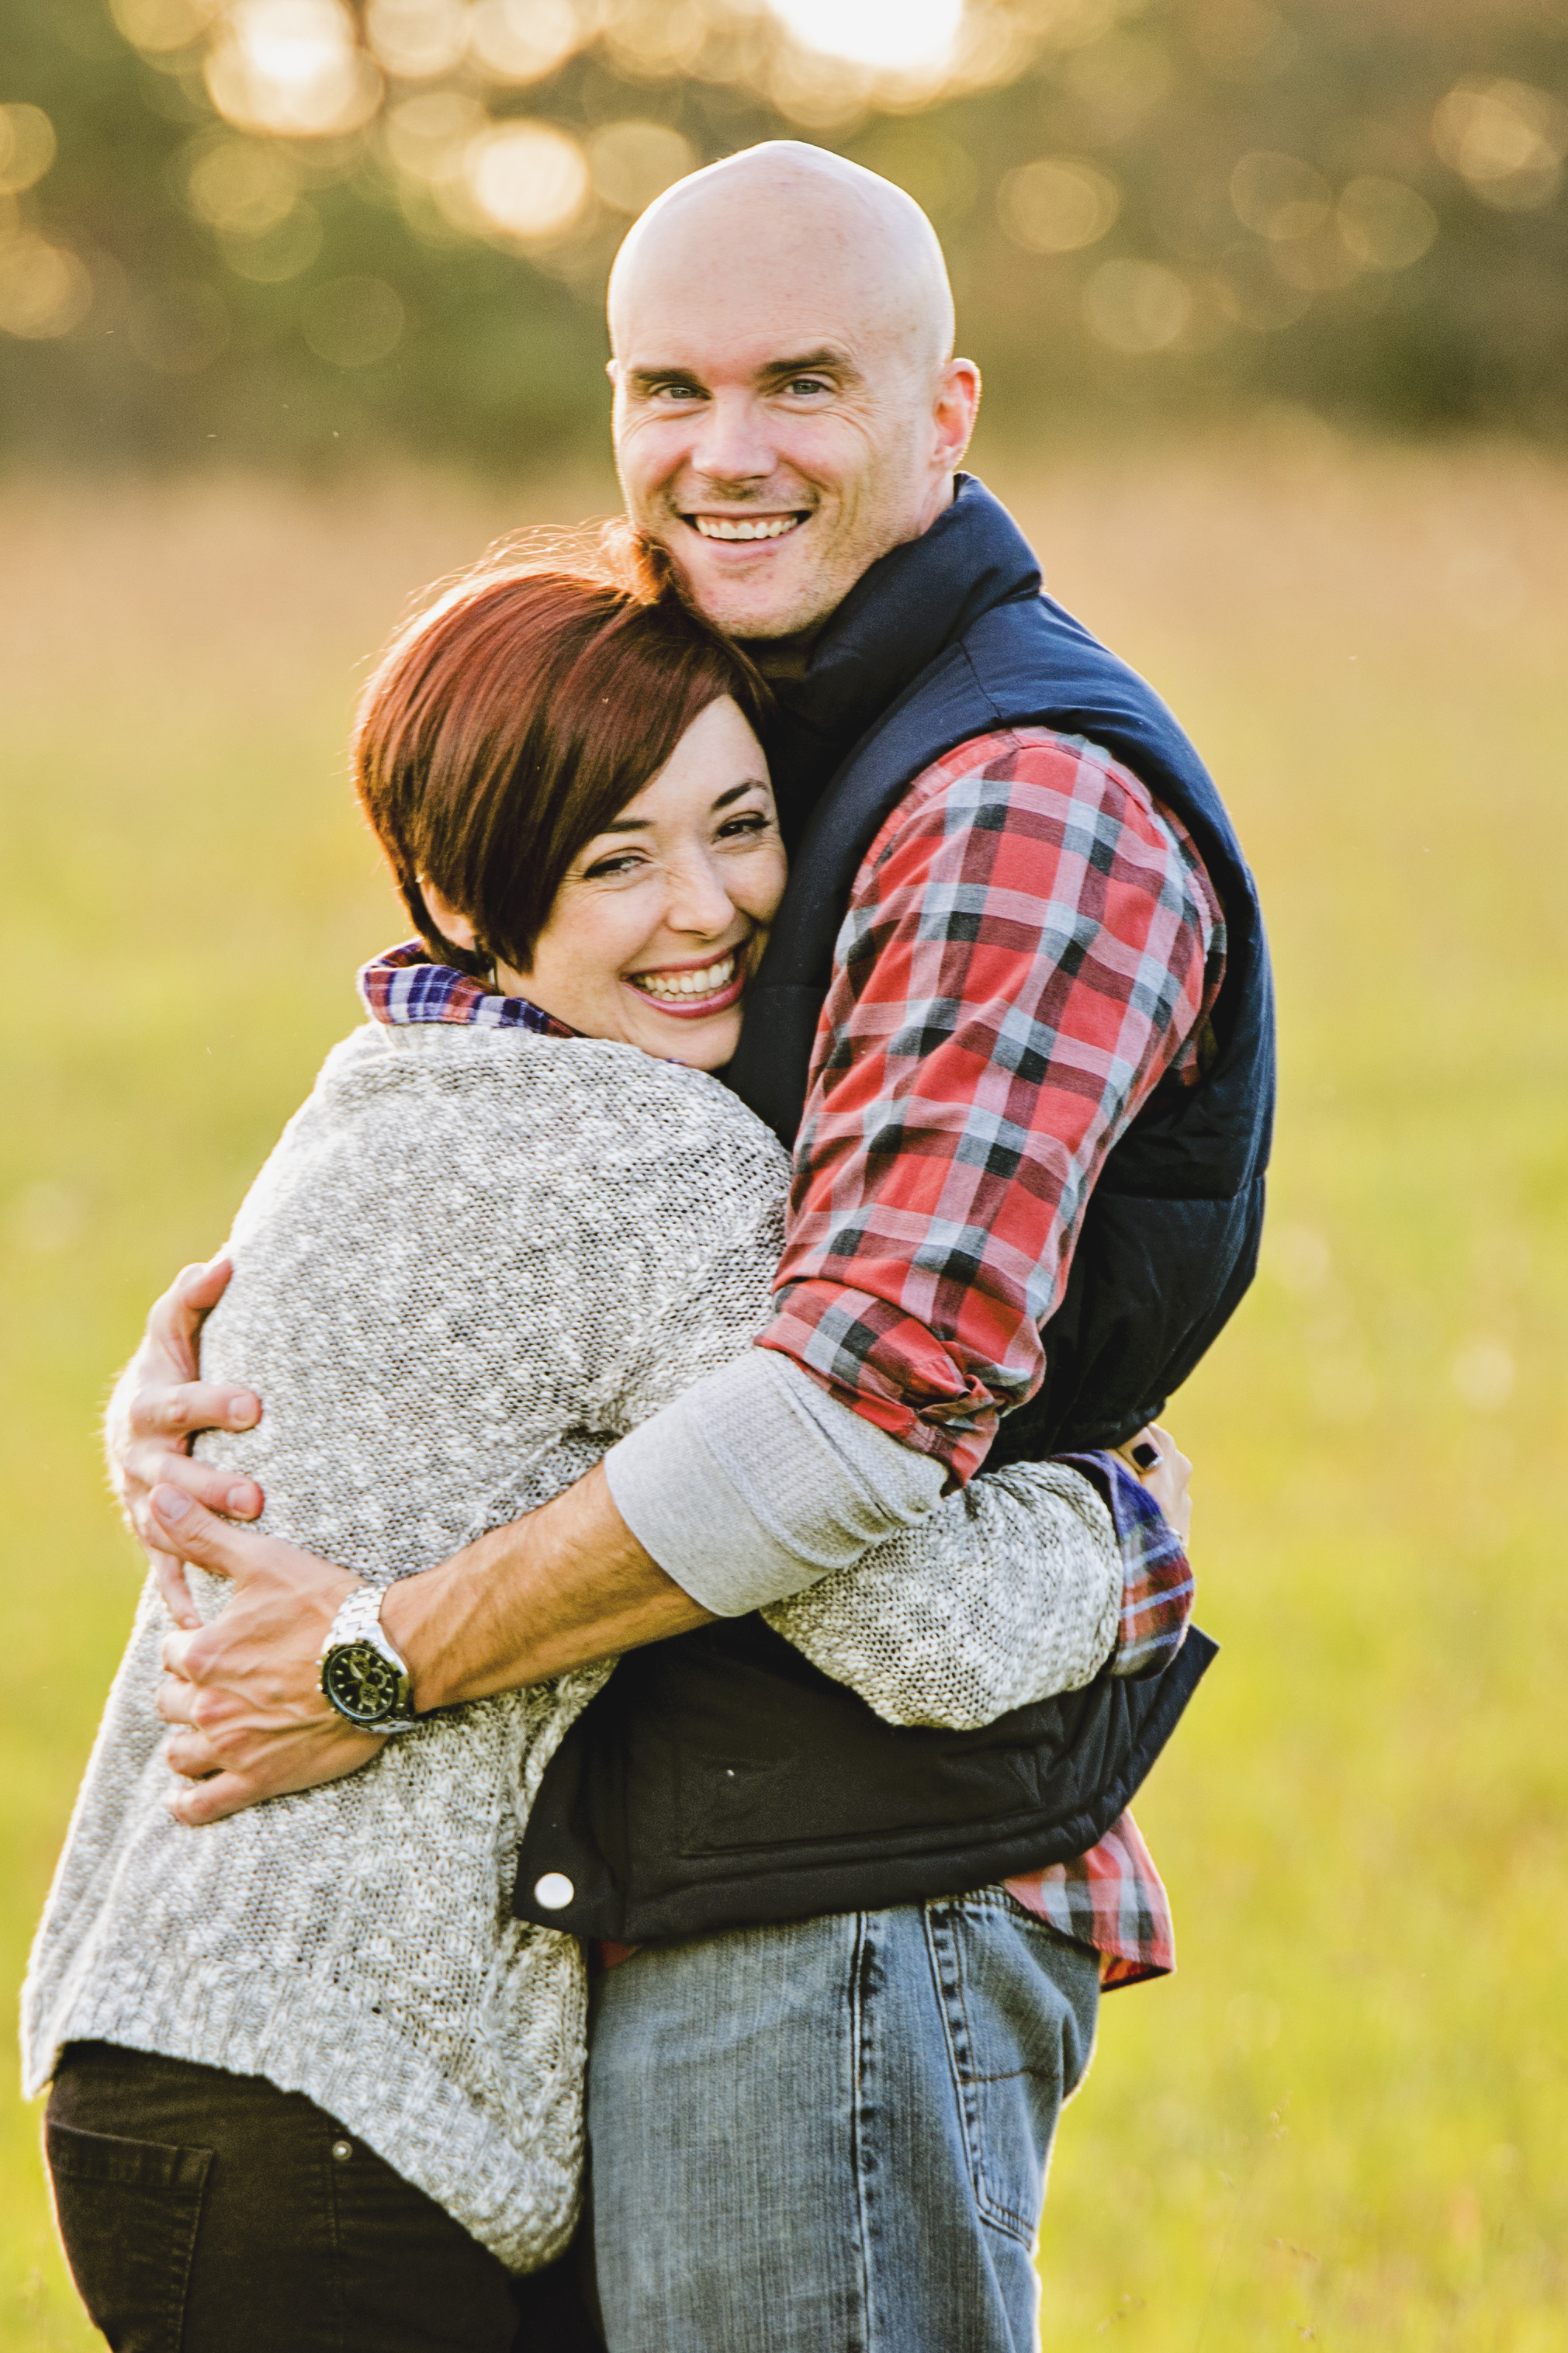 romantic_fall_field_engagement_session_lynchburg_va002.jpg